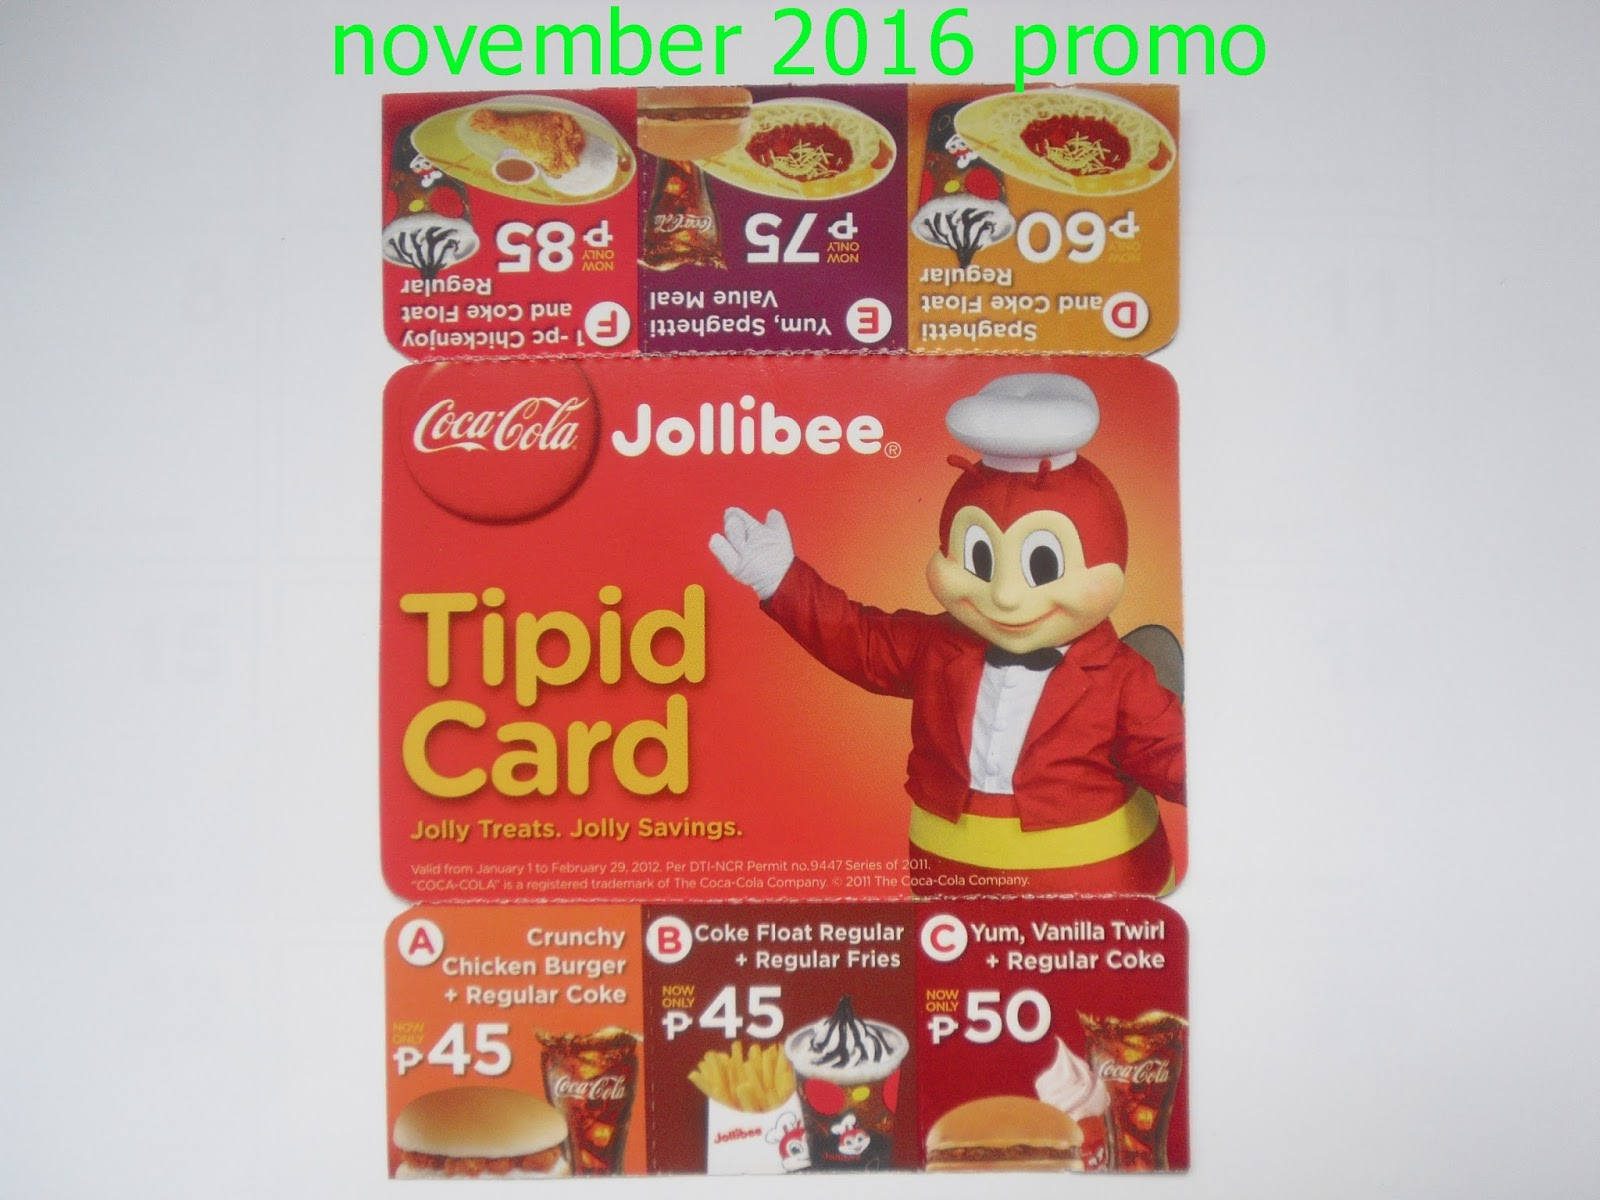 jollibee promotion Copyright © 2009 jollibee all rights reserved website design by 123triad web design.